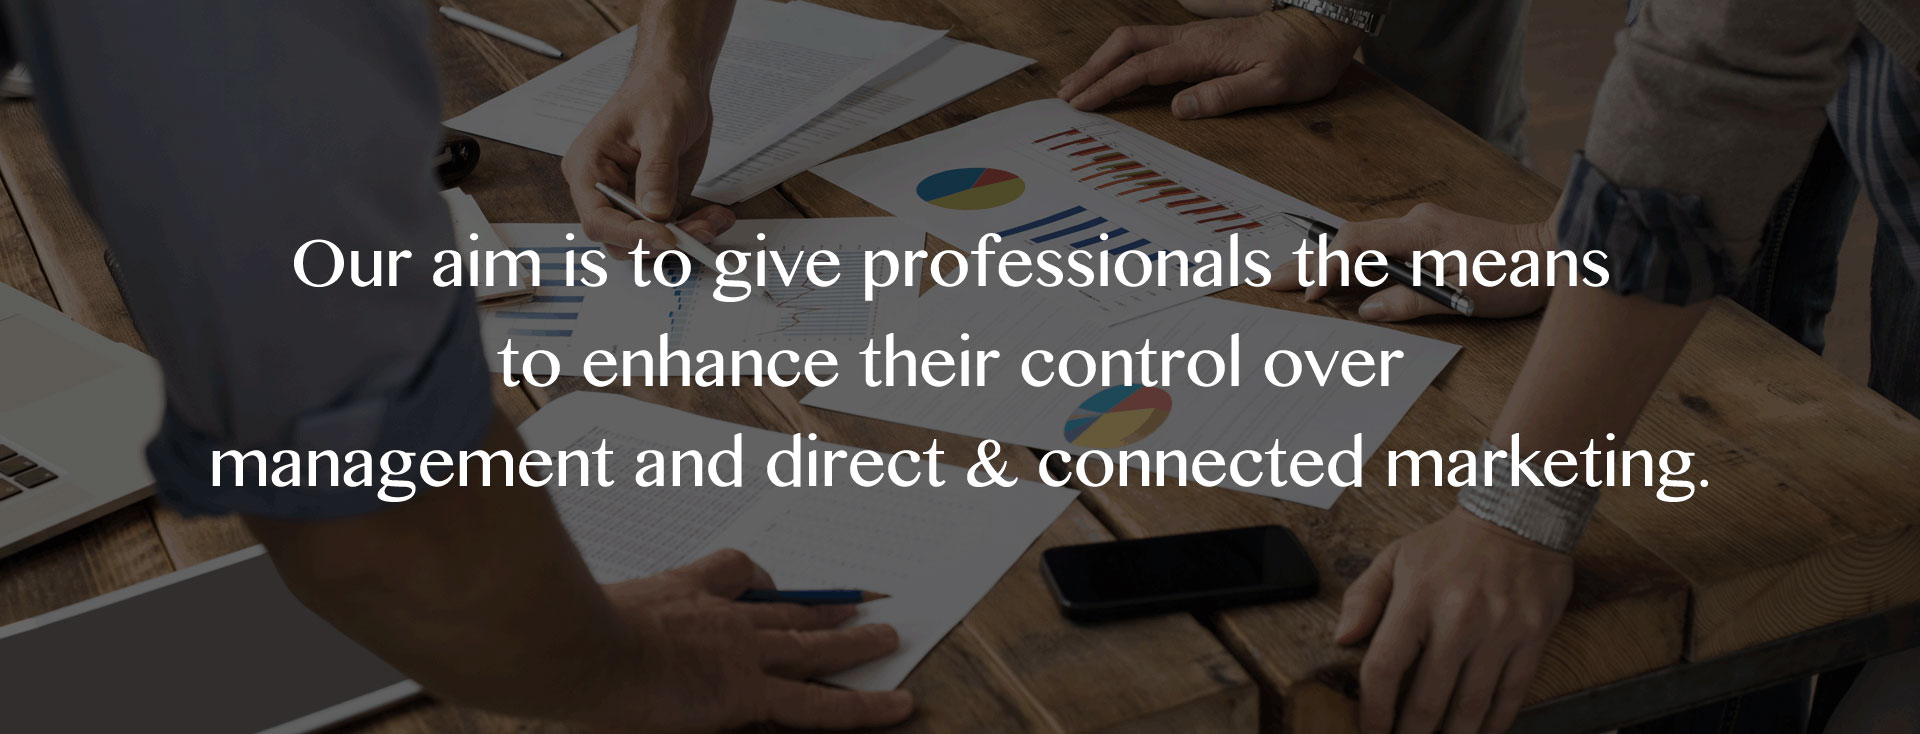 our aim is to give professionals the means to enhance their control over management and direct connected marketing